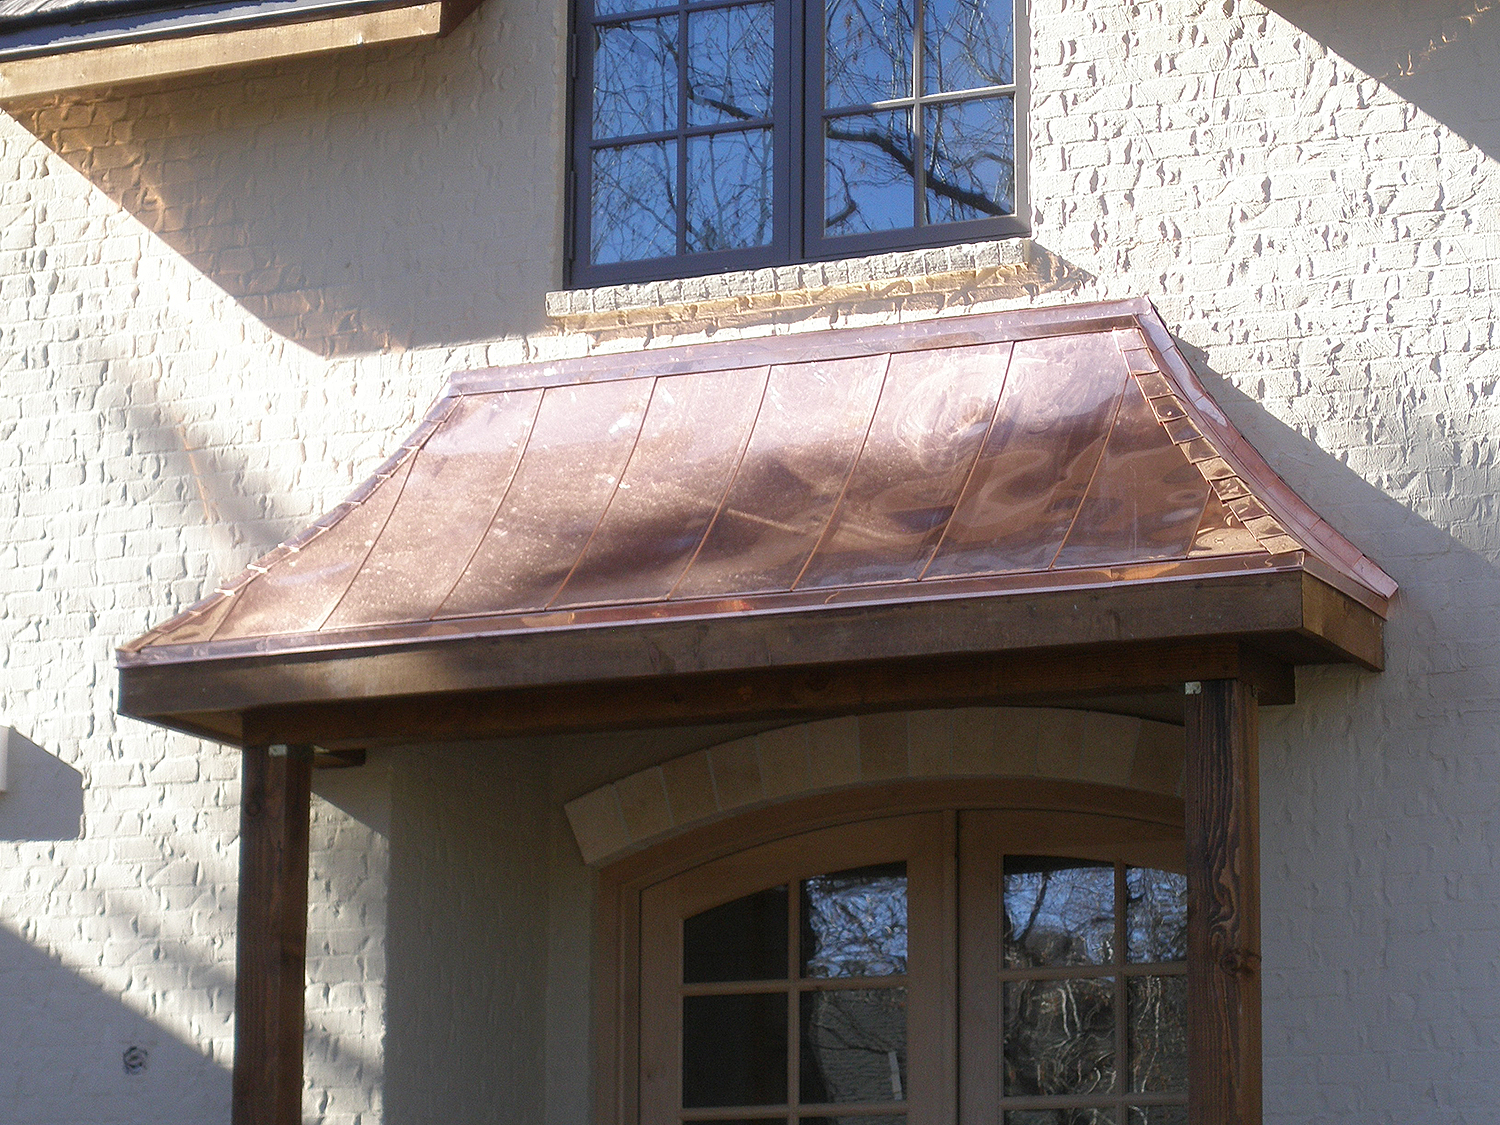 Flat seam copper veneer roof